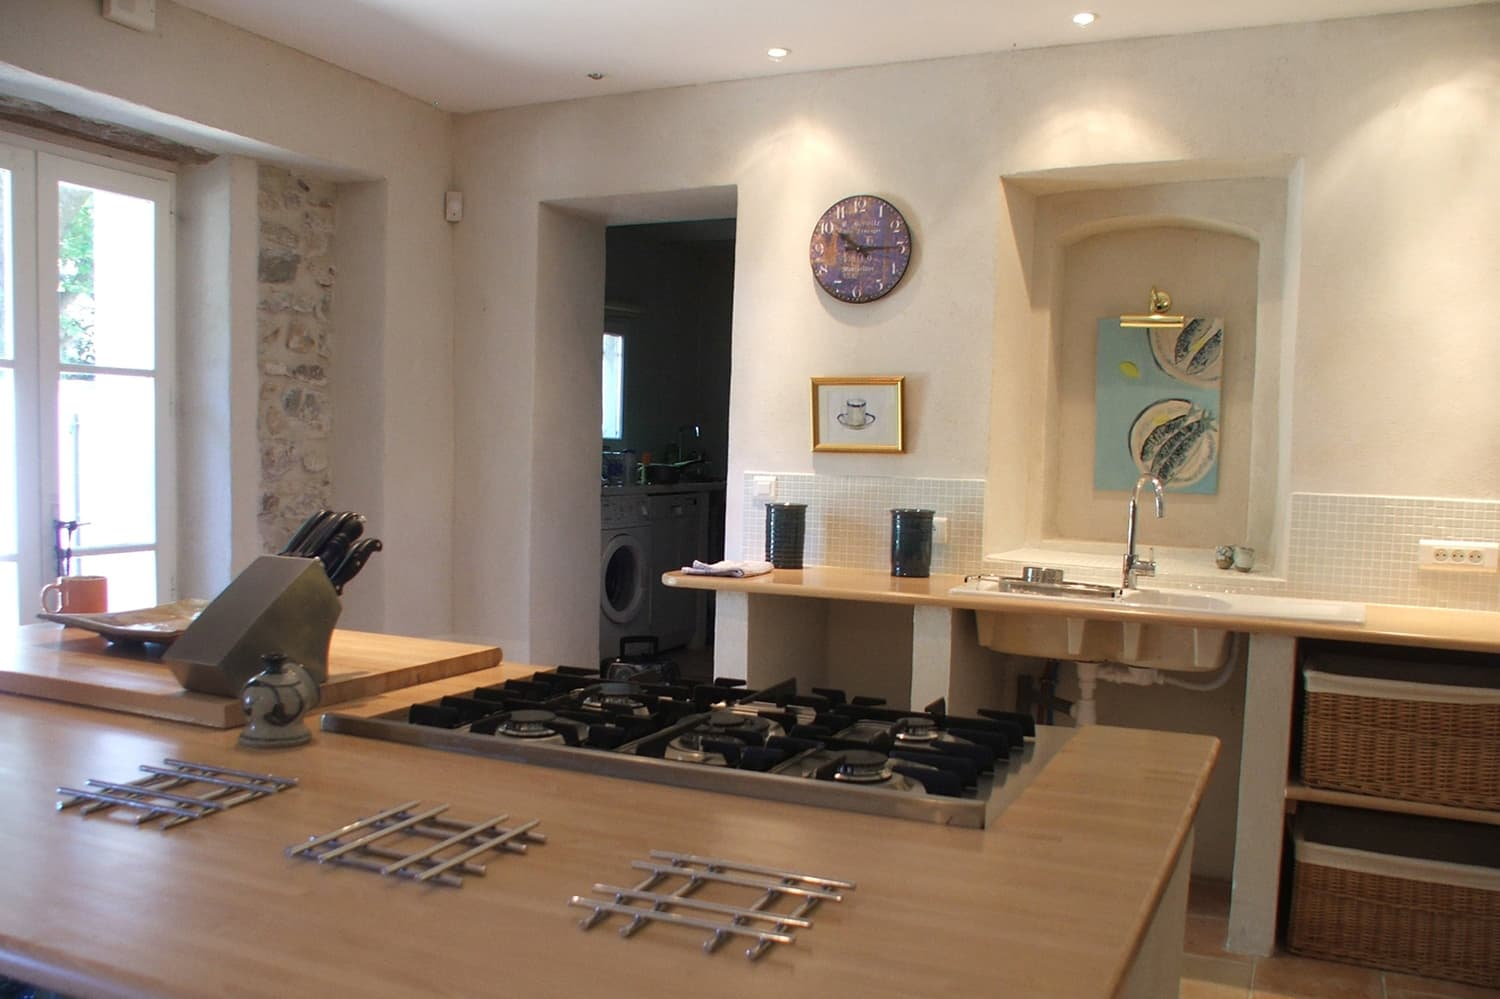 Kitchen in Boisset-et-Gaujac, Occitanie holiday accommodation